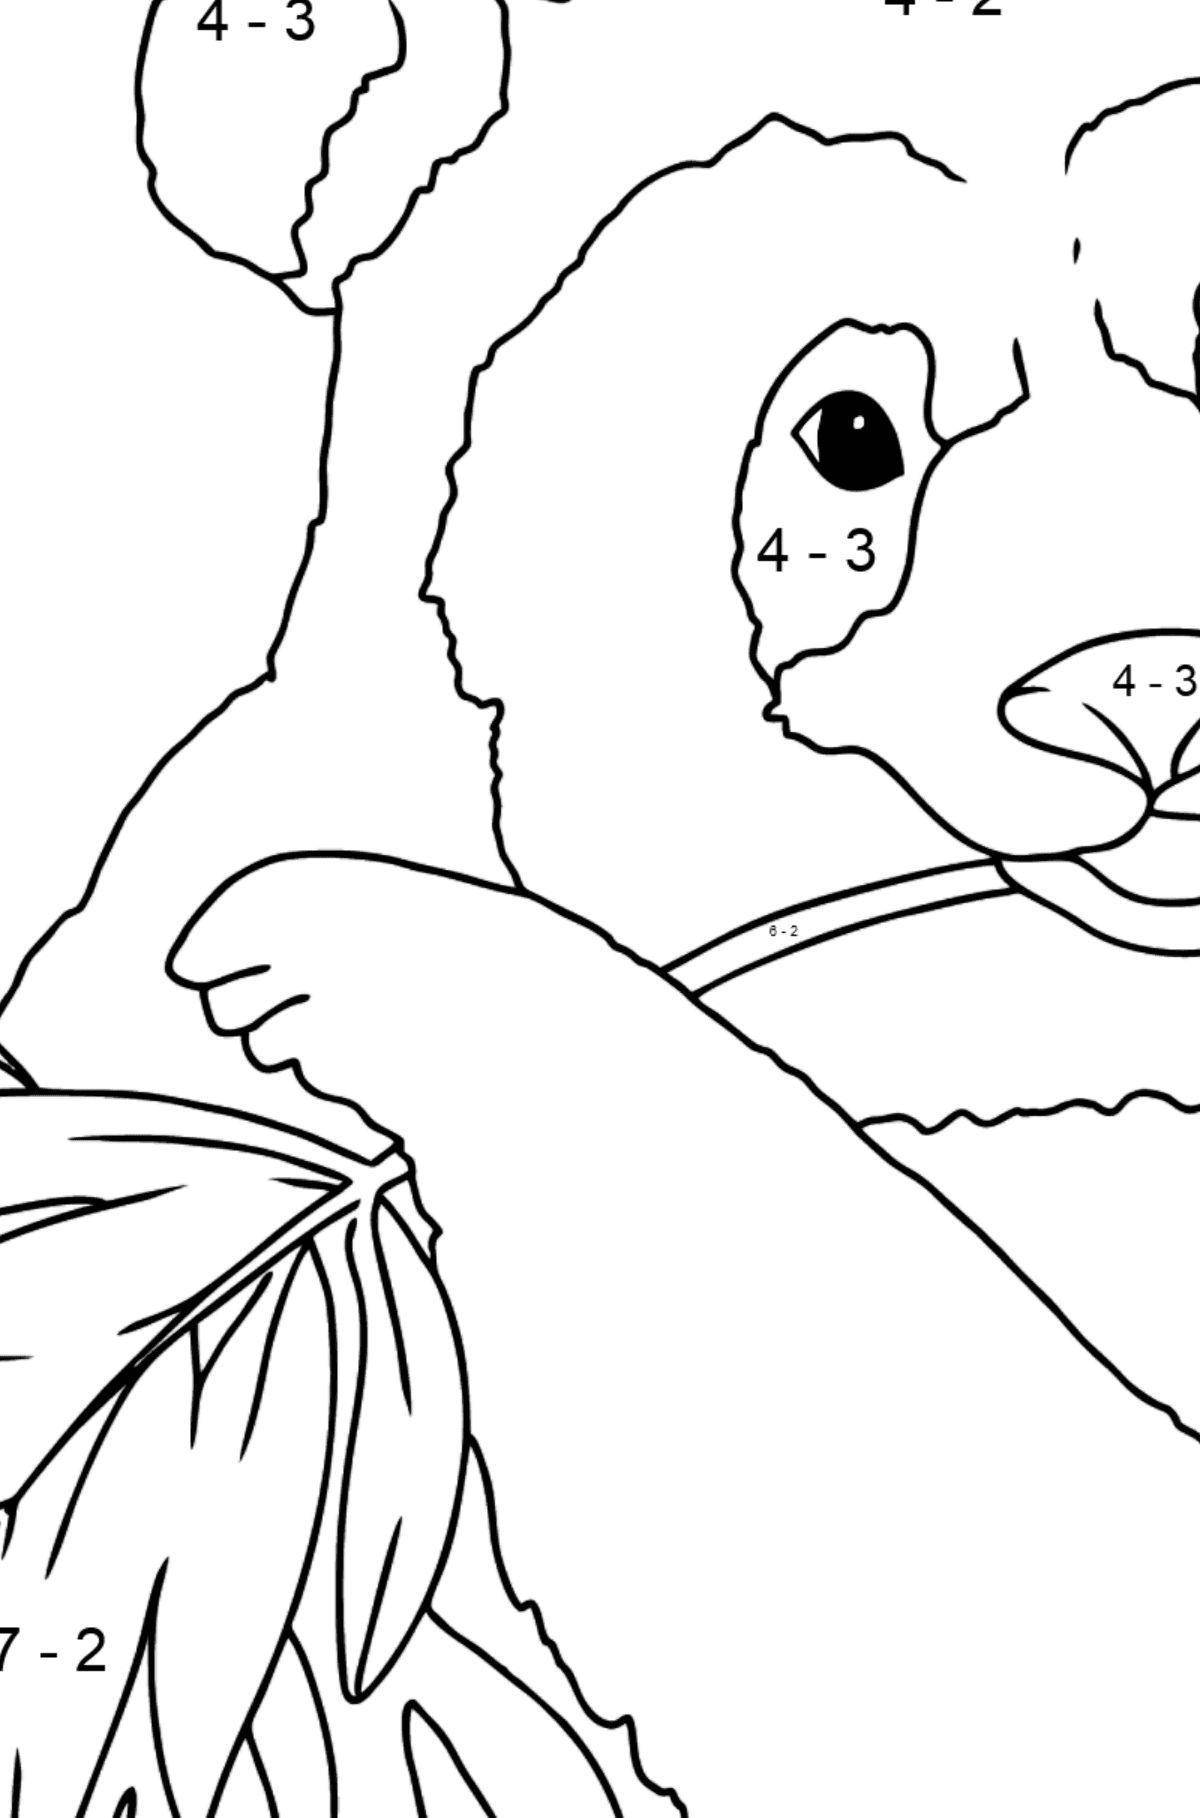 Coloring Page  - A Panda is Eating Leaves - Math Coloring - Subtraction for Kids